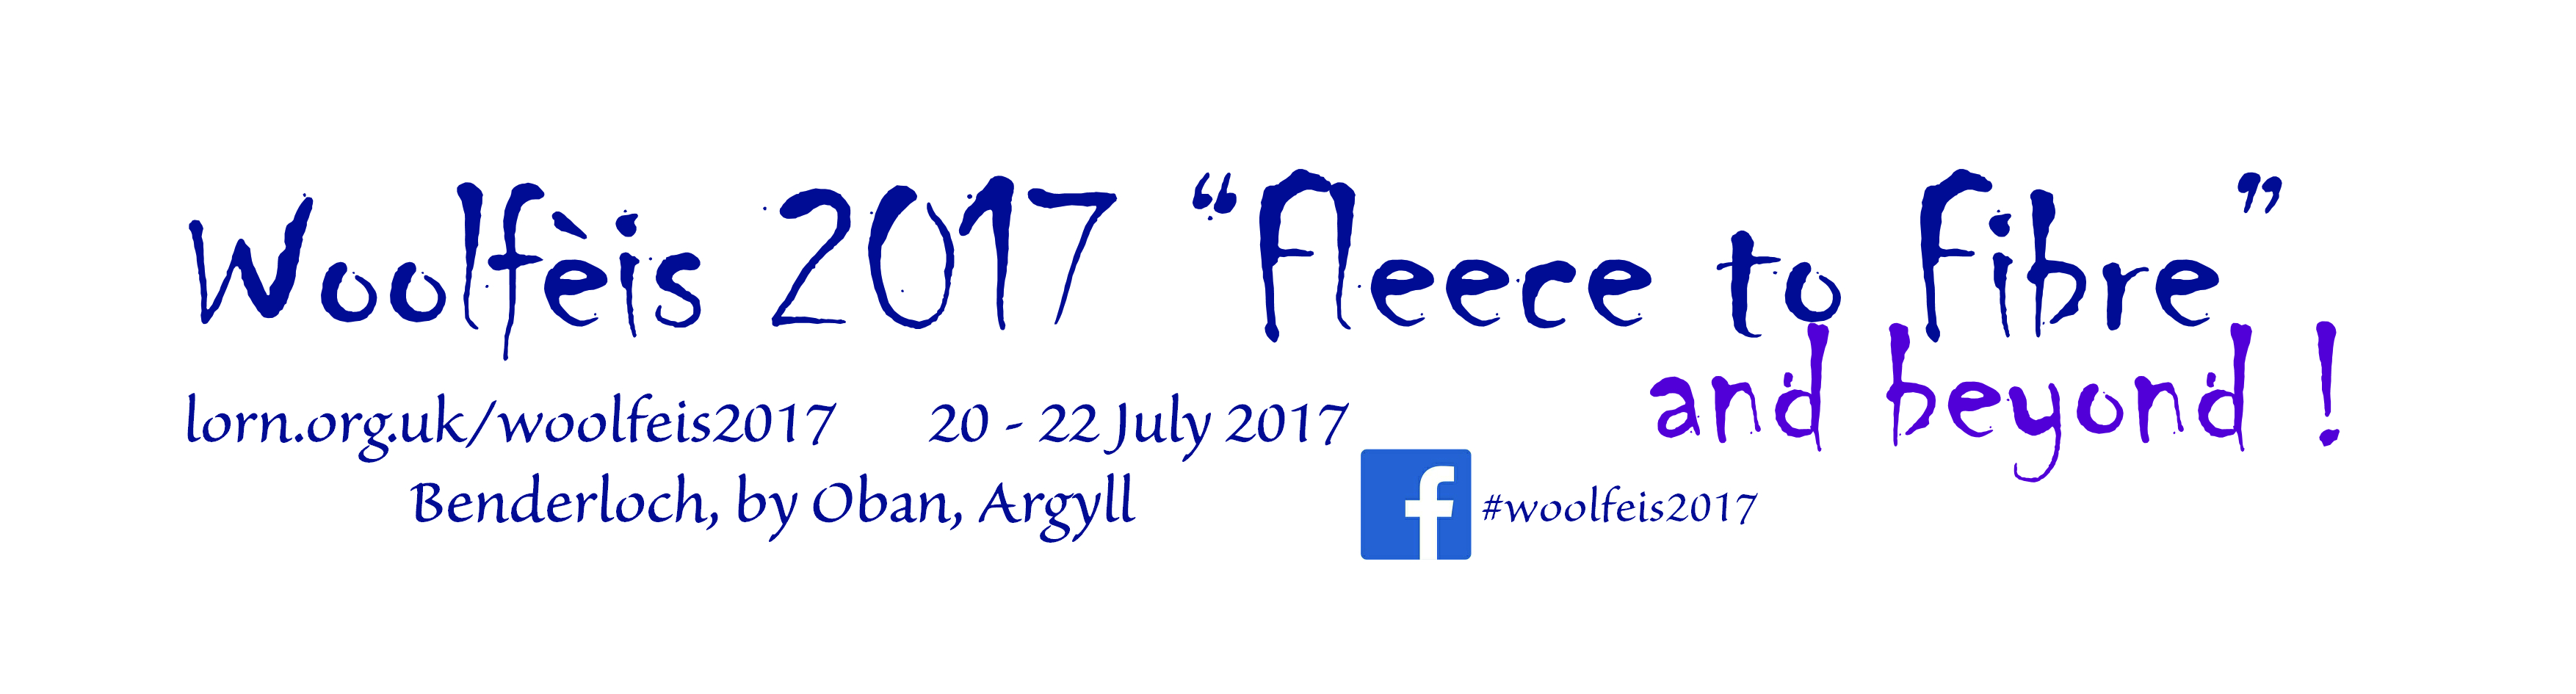 Woolfeis logo 2017 with dates